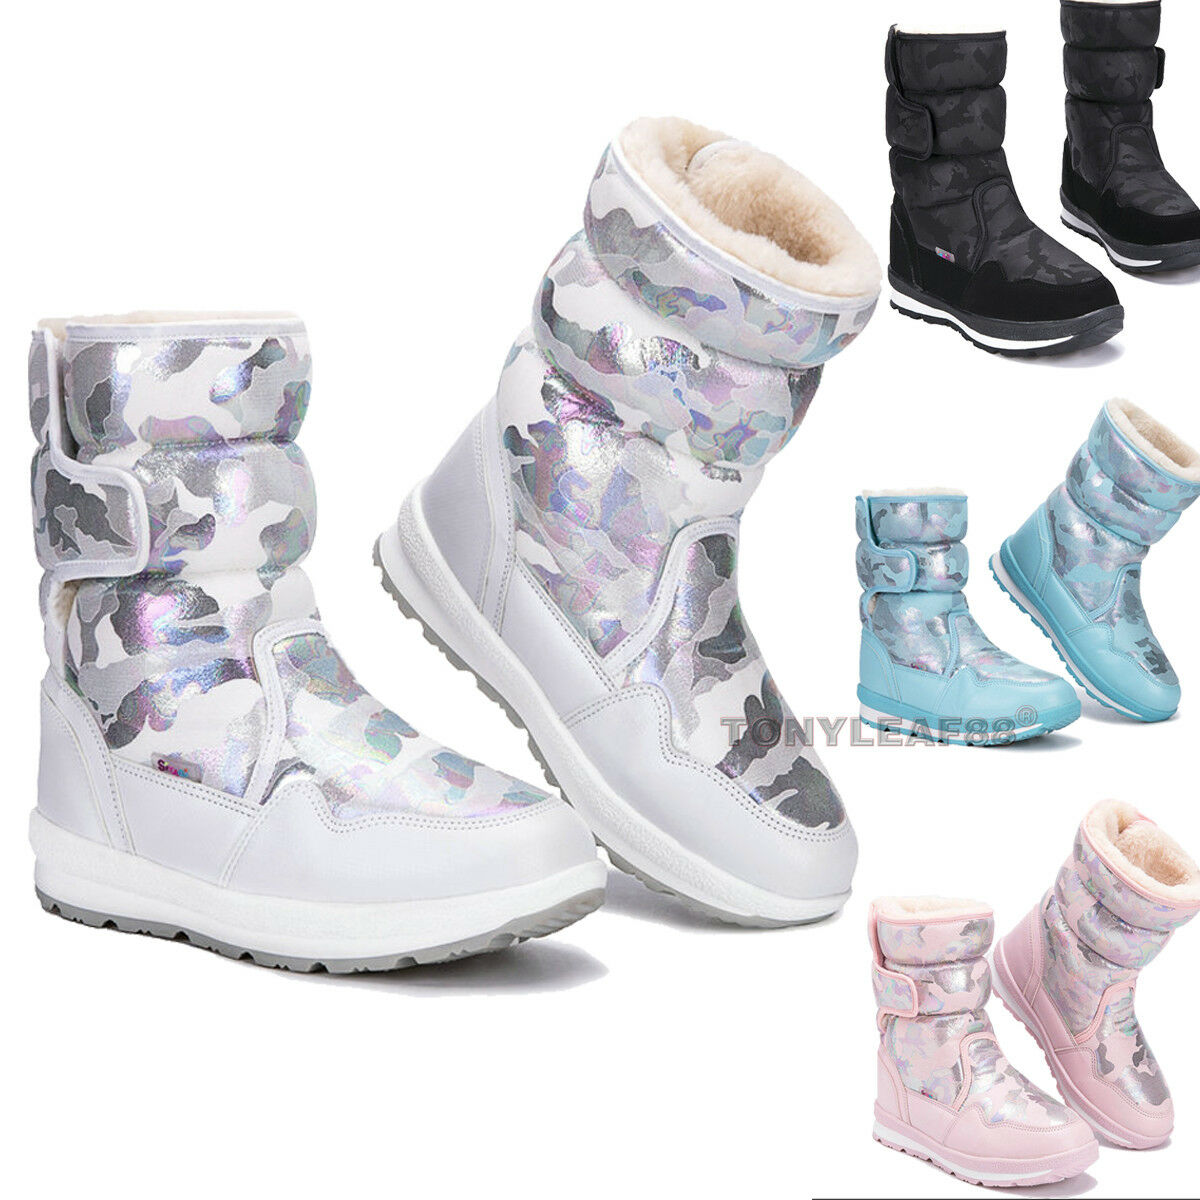 Kids Baby Boys Girls Snow Boots Waterproof Toddler Winter Thicken Warm Shoes